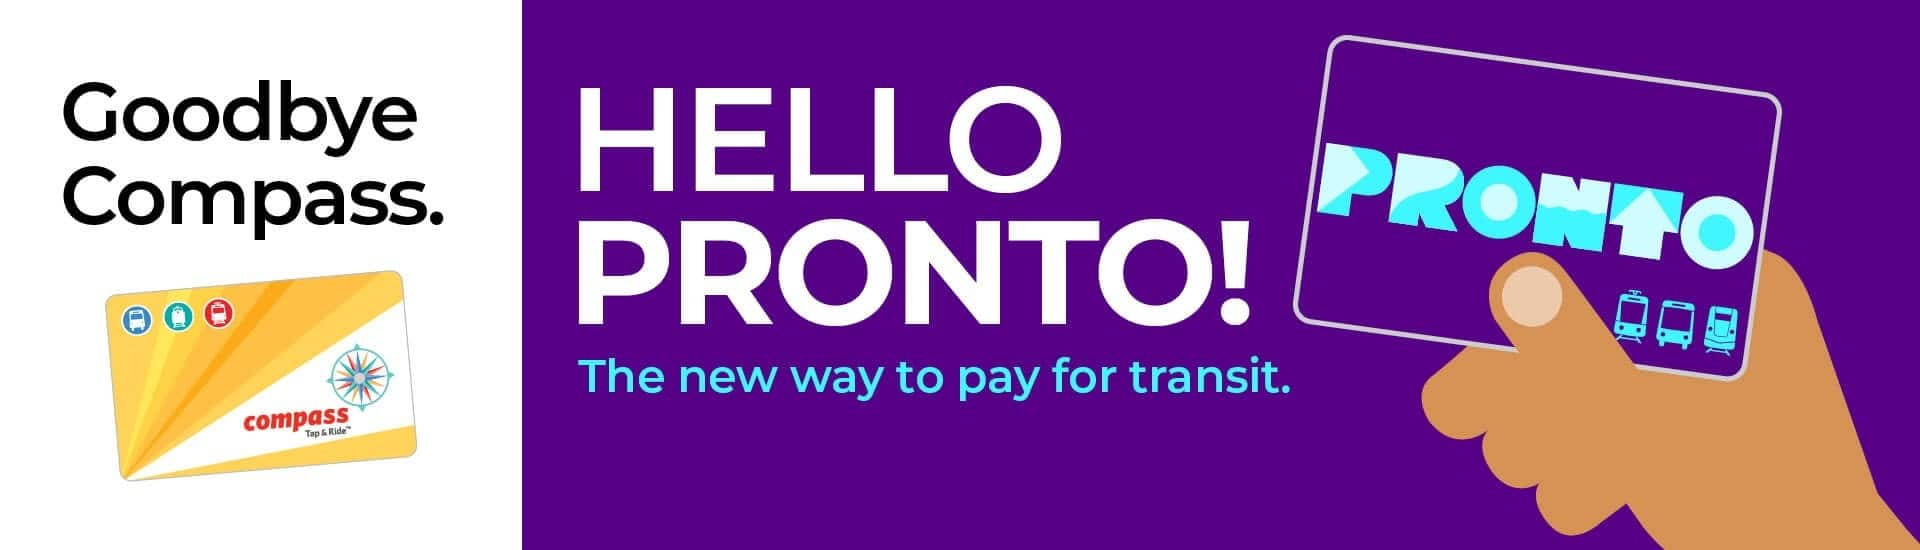 Graphic of new MTS Pronto card